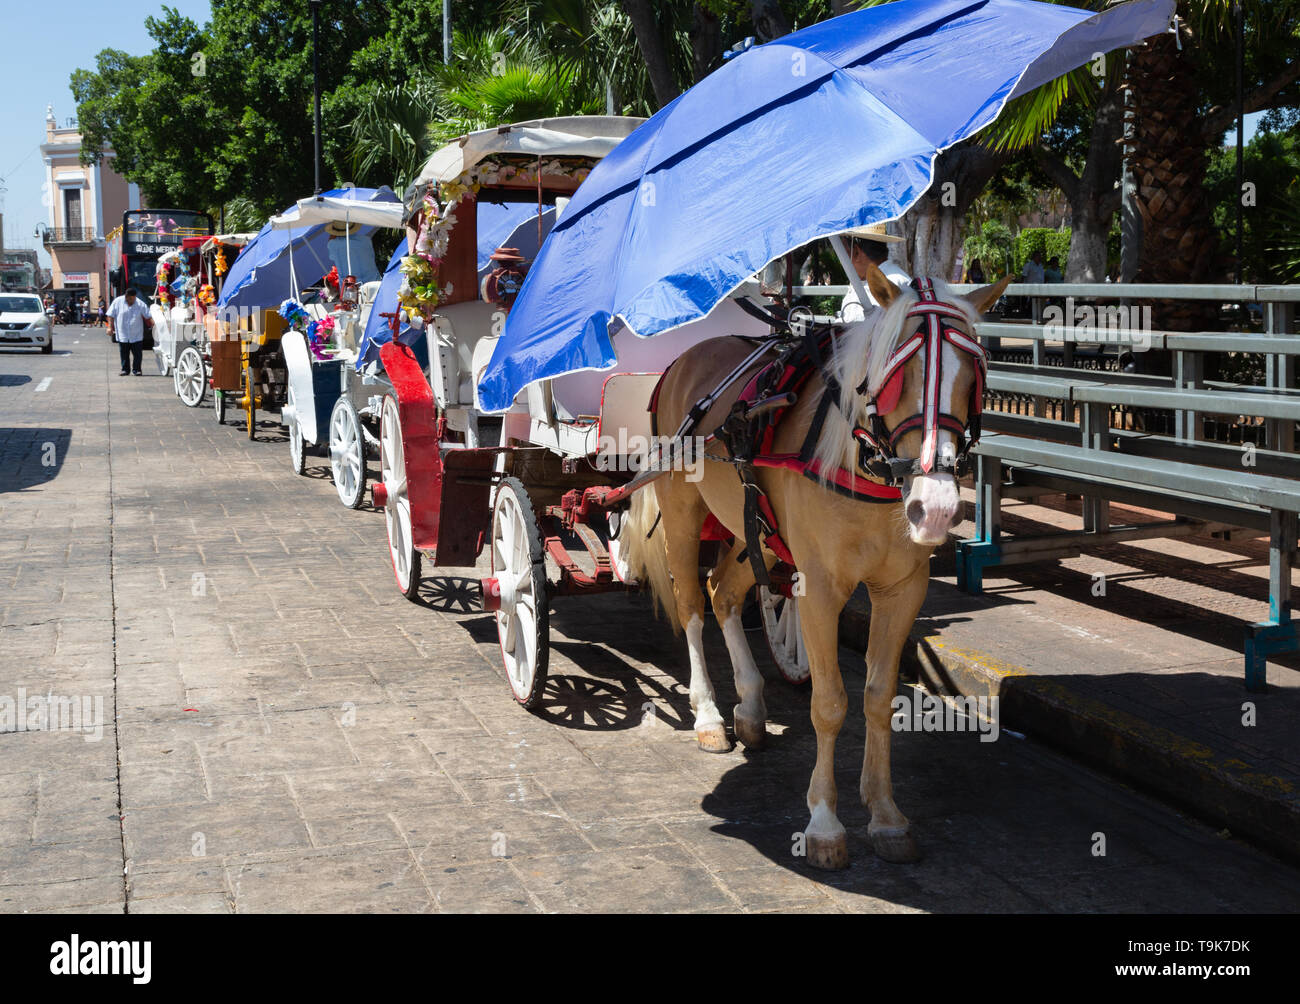 Mexico tourism - horses and carriages waiting for tourists; Plaza de Independencia, Merida Yucatan Mexico Latin America - Stock Image